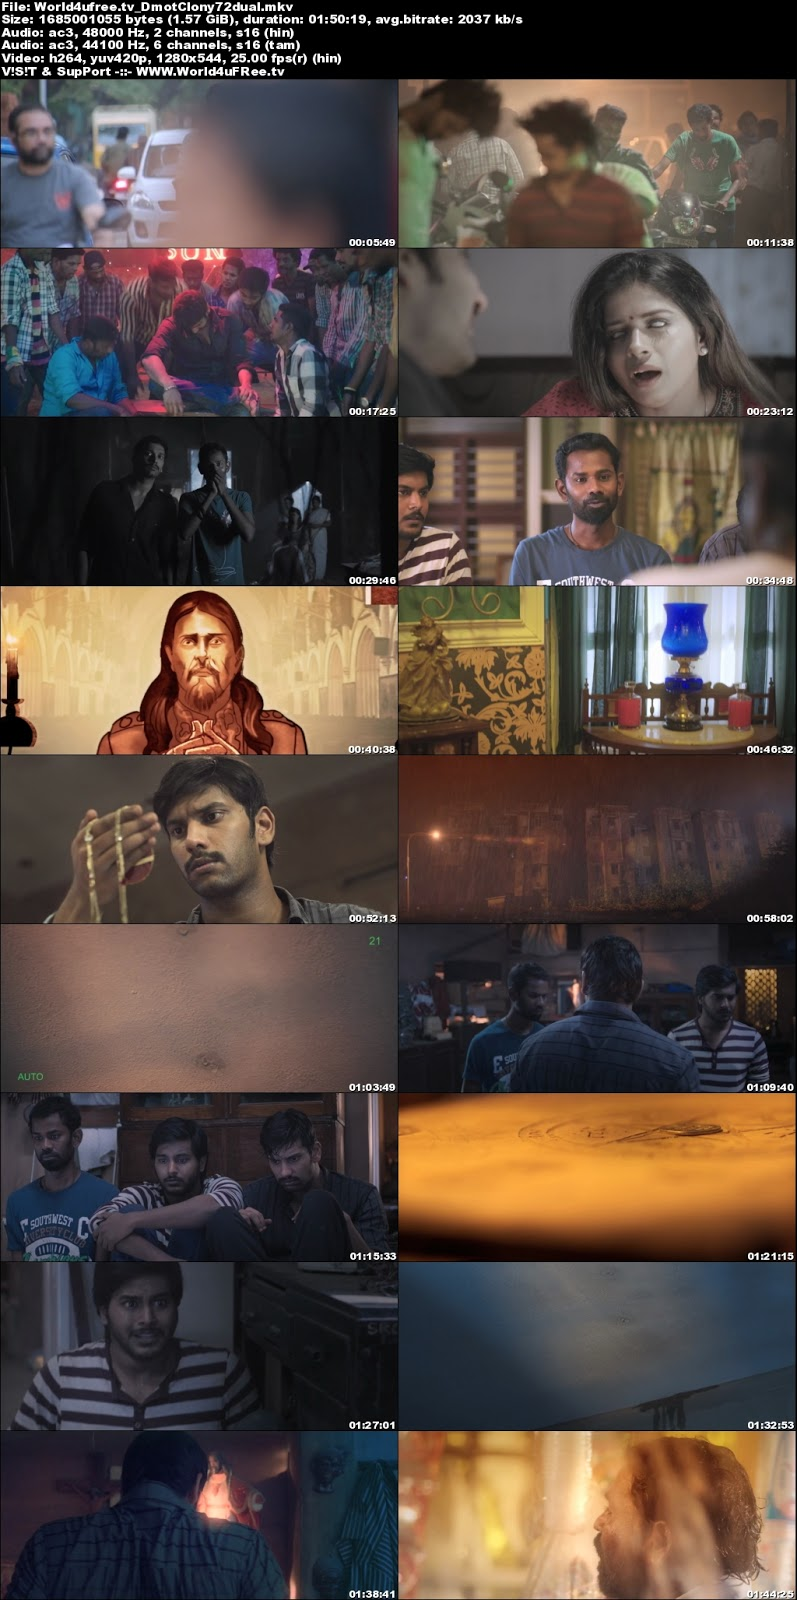 Demonte Colony 2015 Dual Audio 720p UNCUT HDRip 1.5Gb x264 world4ufree.tv , South indian movie Demonte Colony 2015 hindi dubbed world4ufree.to 720p hdrip webrip dvdrip 700mb brrip bluray free download or watch online at world4ufree.tv